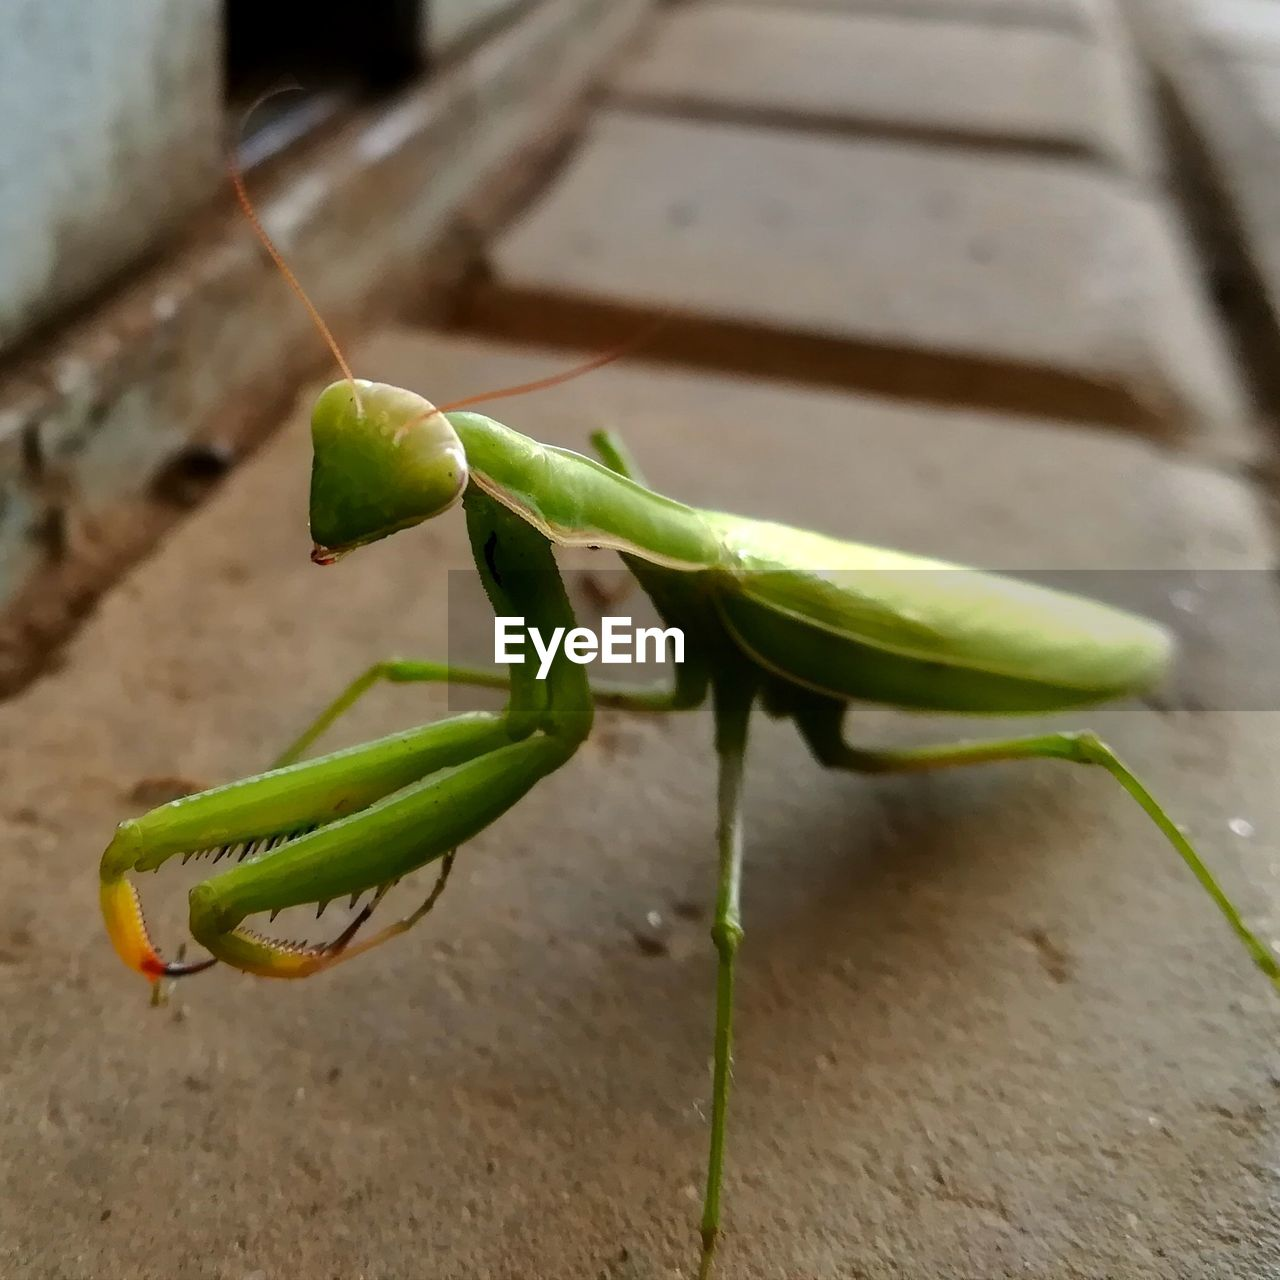 green color, close-up, animal wildlife, no people, animals in the wild, invertebrate, insect, one animal, animal themes, praying mantis, animal, day, nature, selective focus, focus on foreground, outdoors, animal body part, zoology, animal antenna, high angle view